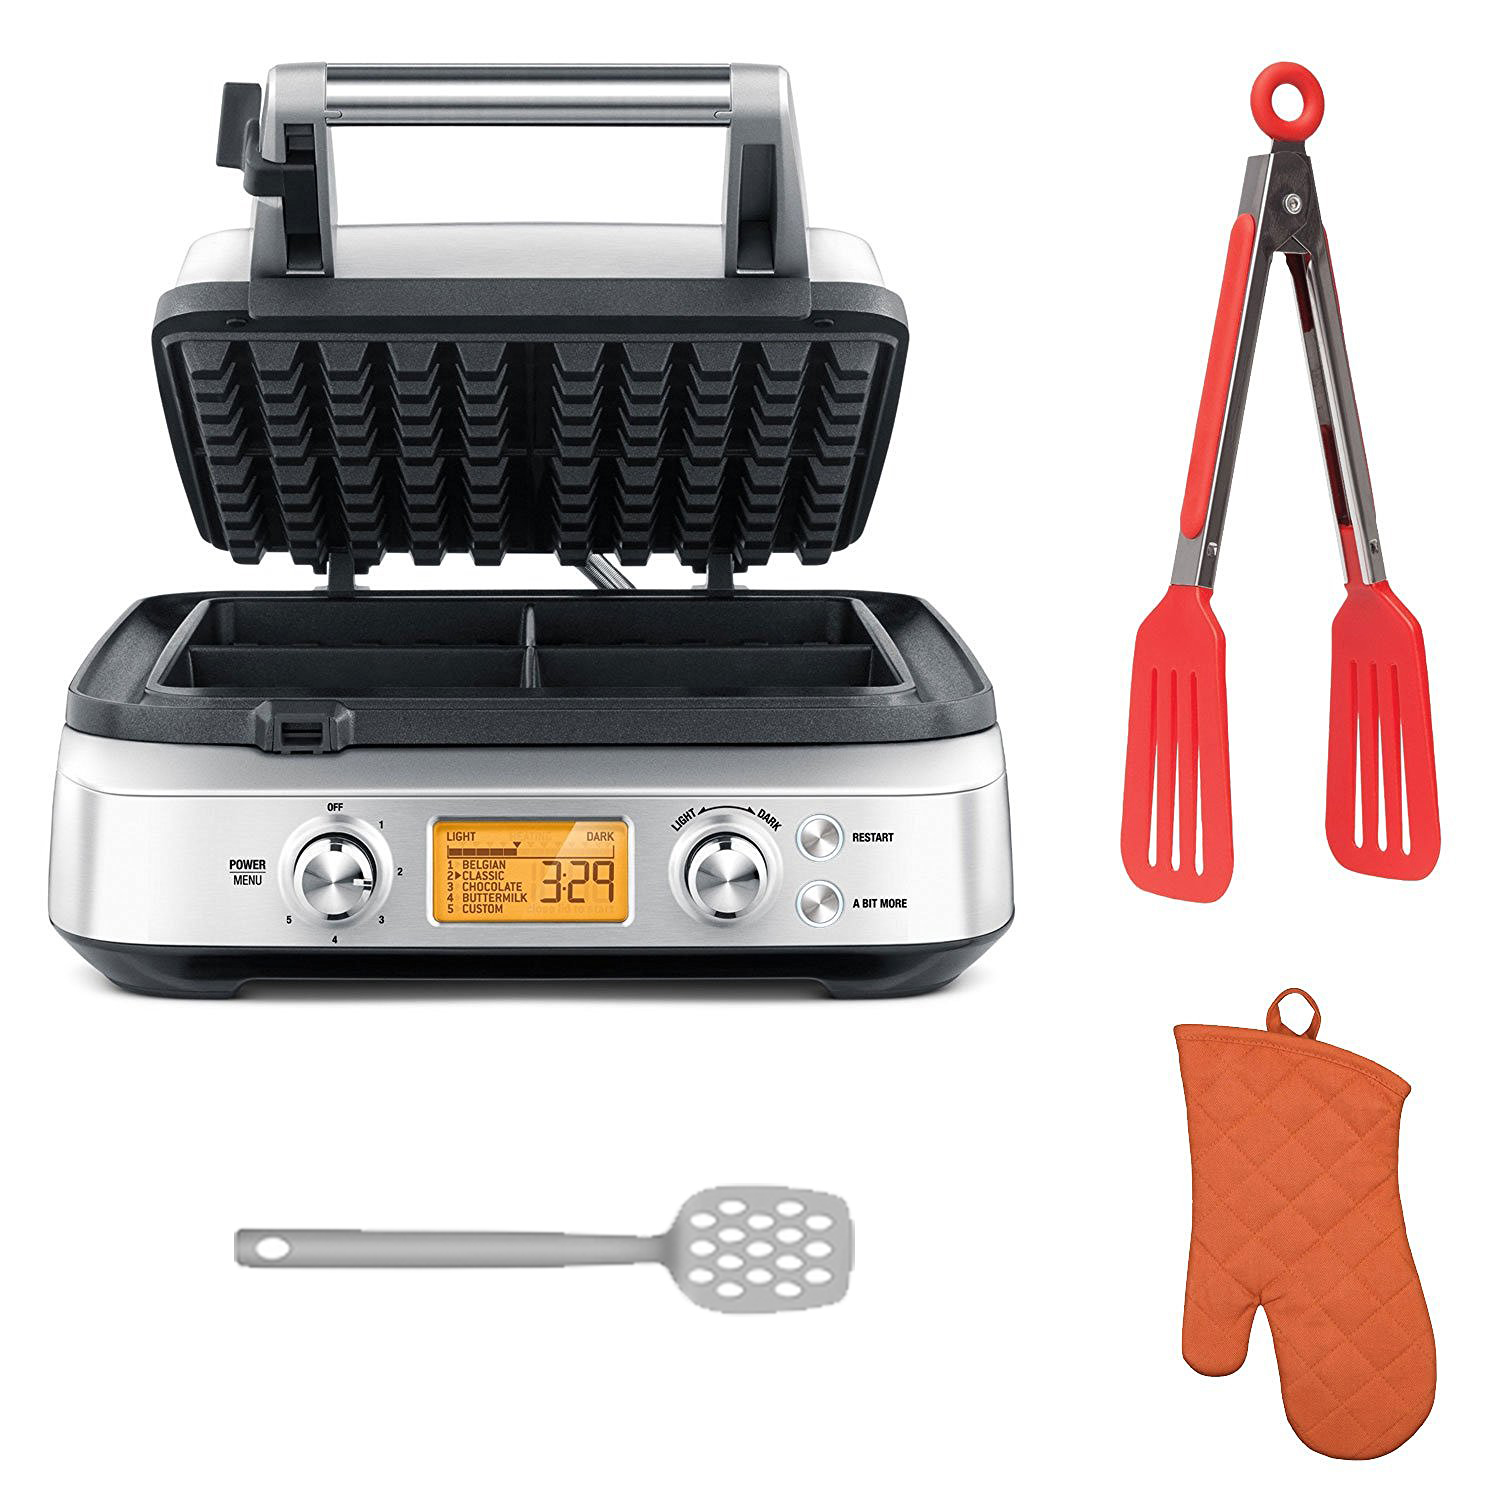 Breville BWM640XL 4 Square Smart Waffle Maker with Deluxe...